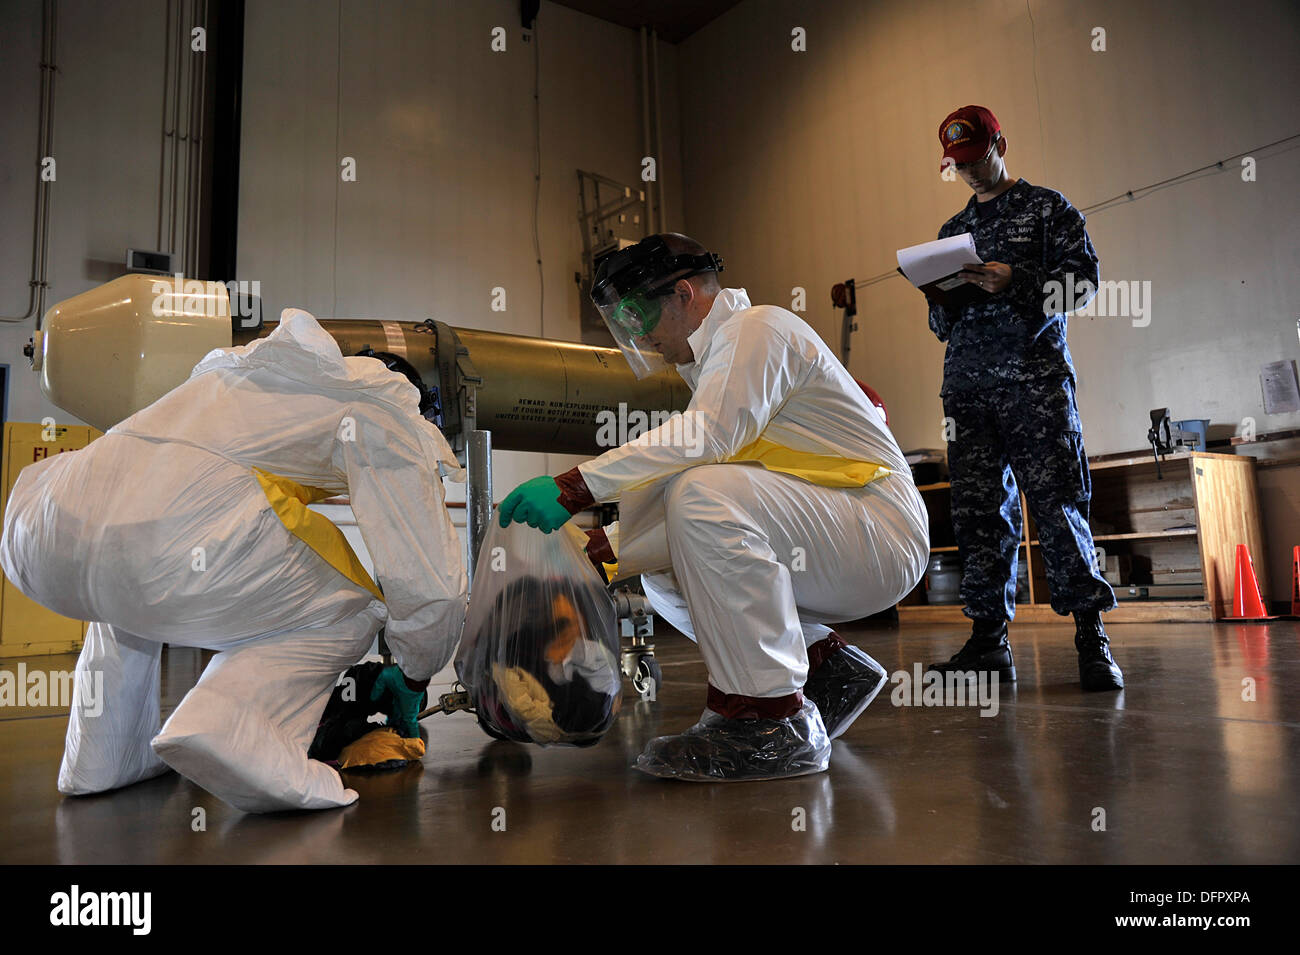 MISAWA AIR BASE, Japan (Sept. 26, 2013) Damage Controlman 2nd Class Jerrett Hurtt, left, originally from Humboldt, Ariz., and Av - Stock Image